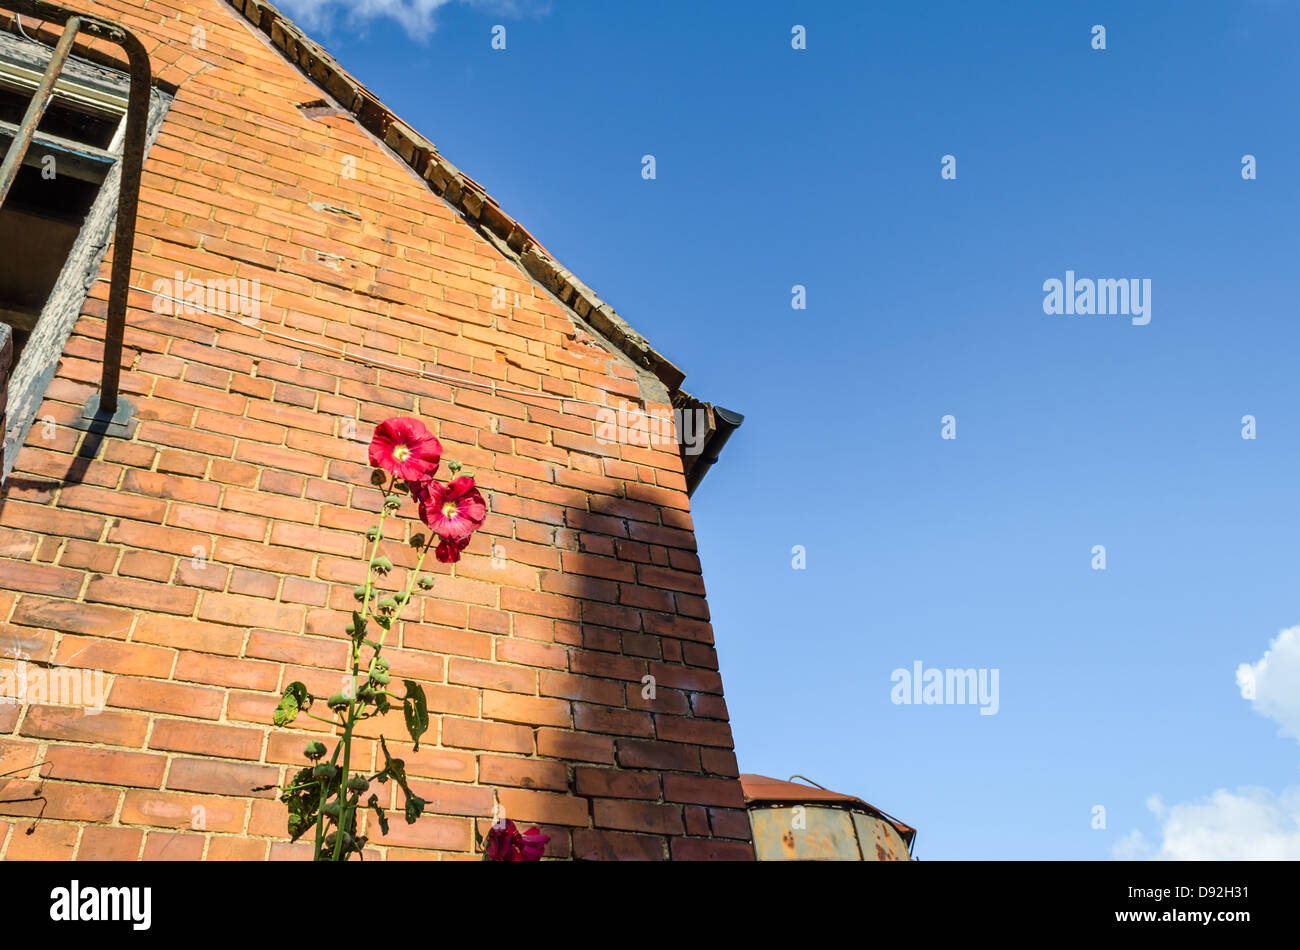 Colorful flowers against an old brick building in Moreton. Moreton-in-Marsh, Gloucestershire, England. - Stock Image